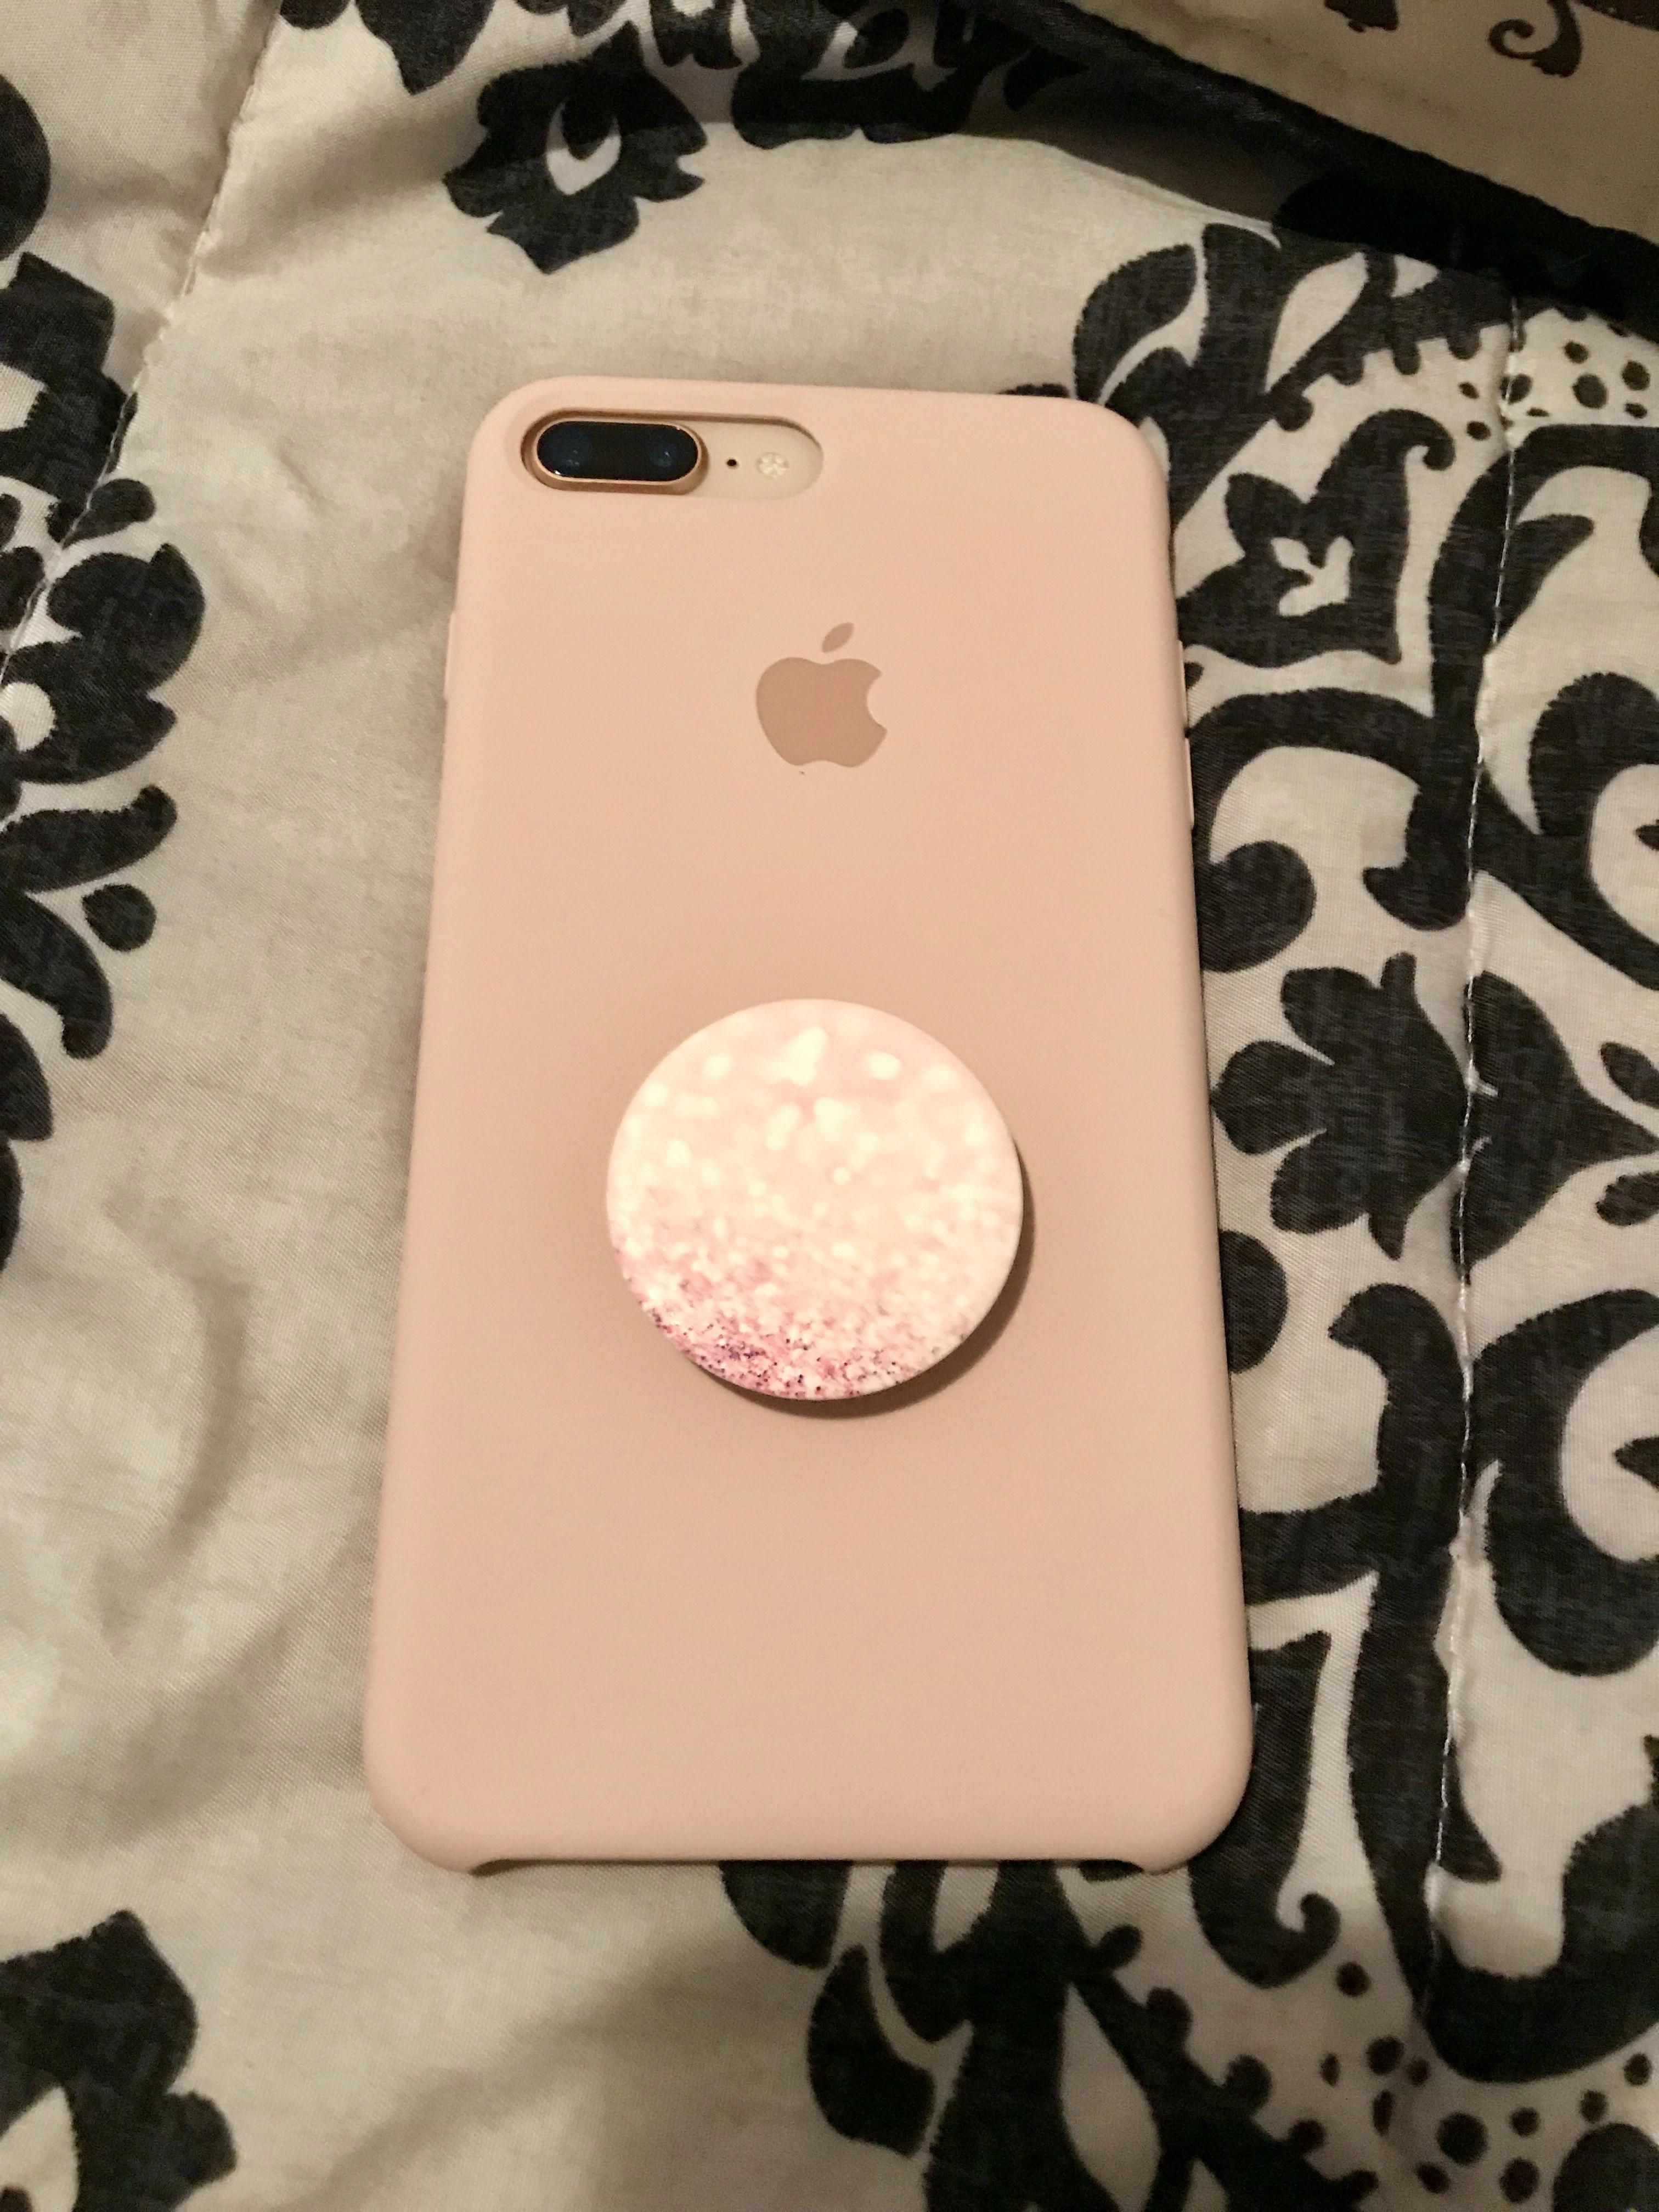 Iphone 8 Plus Gold With Pink Sand Apple Silicone Case Pink Blush Pop Socket Iphonexsmax Pink Phone Cases Apple Phone Case Iphone Phone Cases